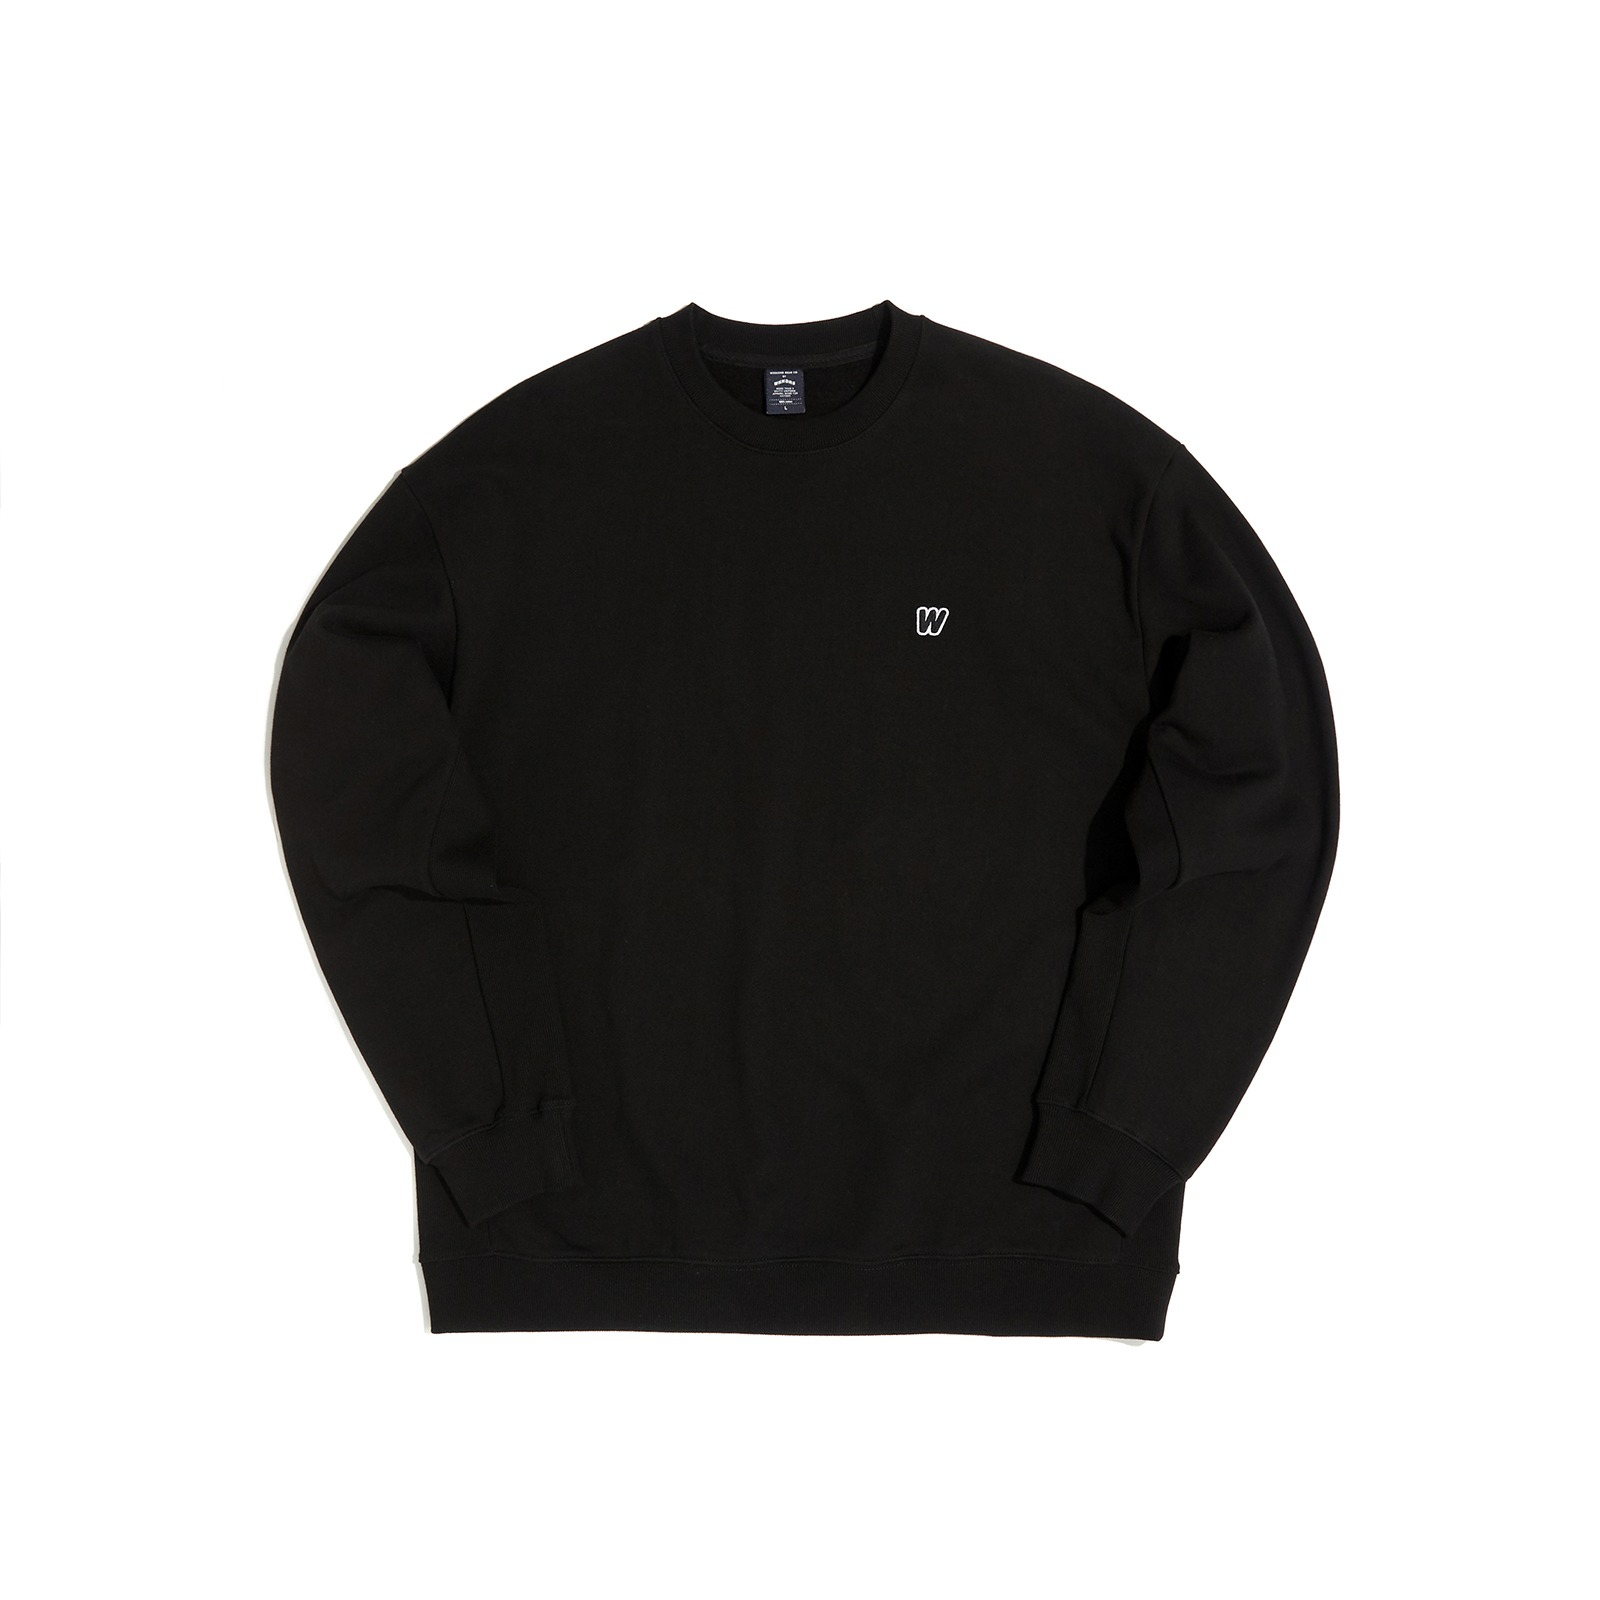 W LOGO SWEATSHIRT (BLACK)